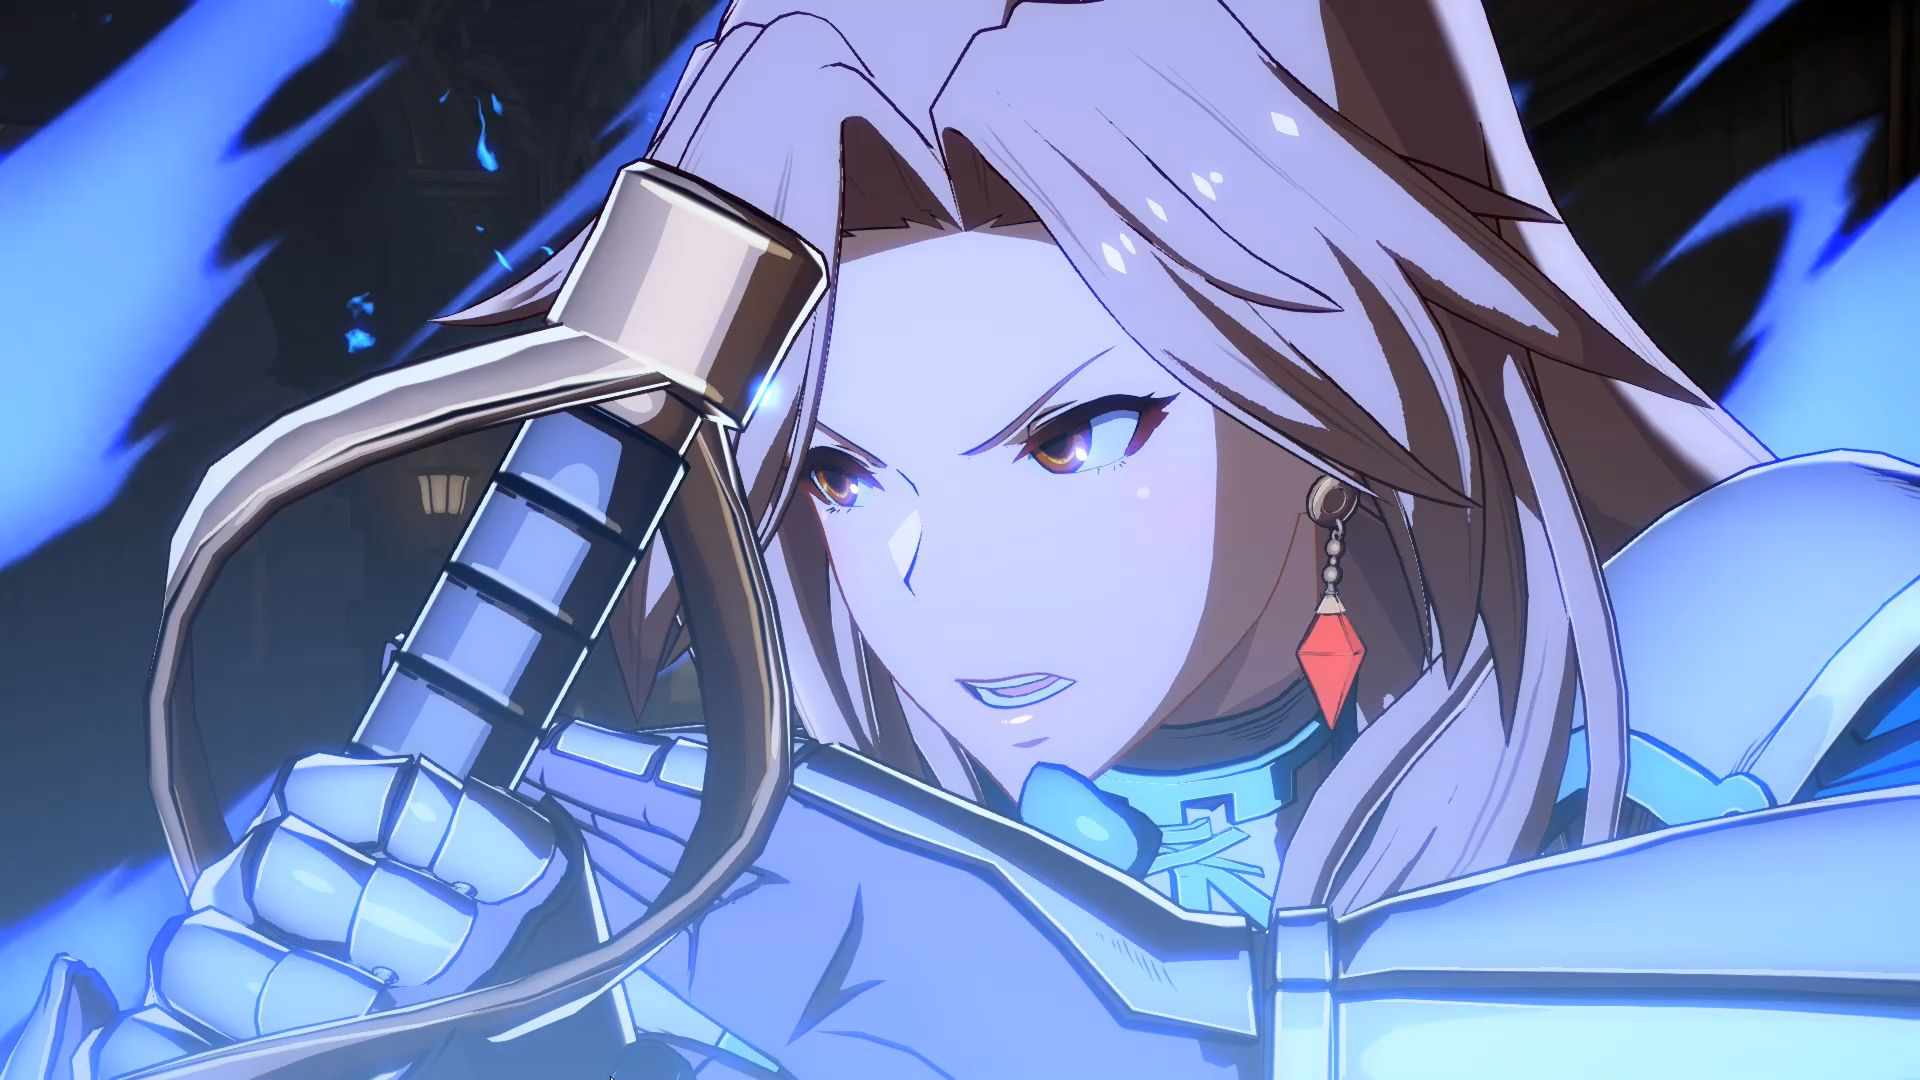 Granblue Fantasy Versus And Relink Interview Granblue Fantasy Versus 1583242 Hd Wallpaper Backgrounds Download